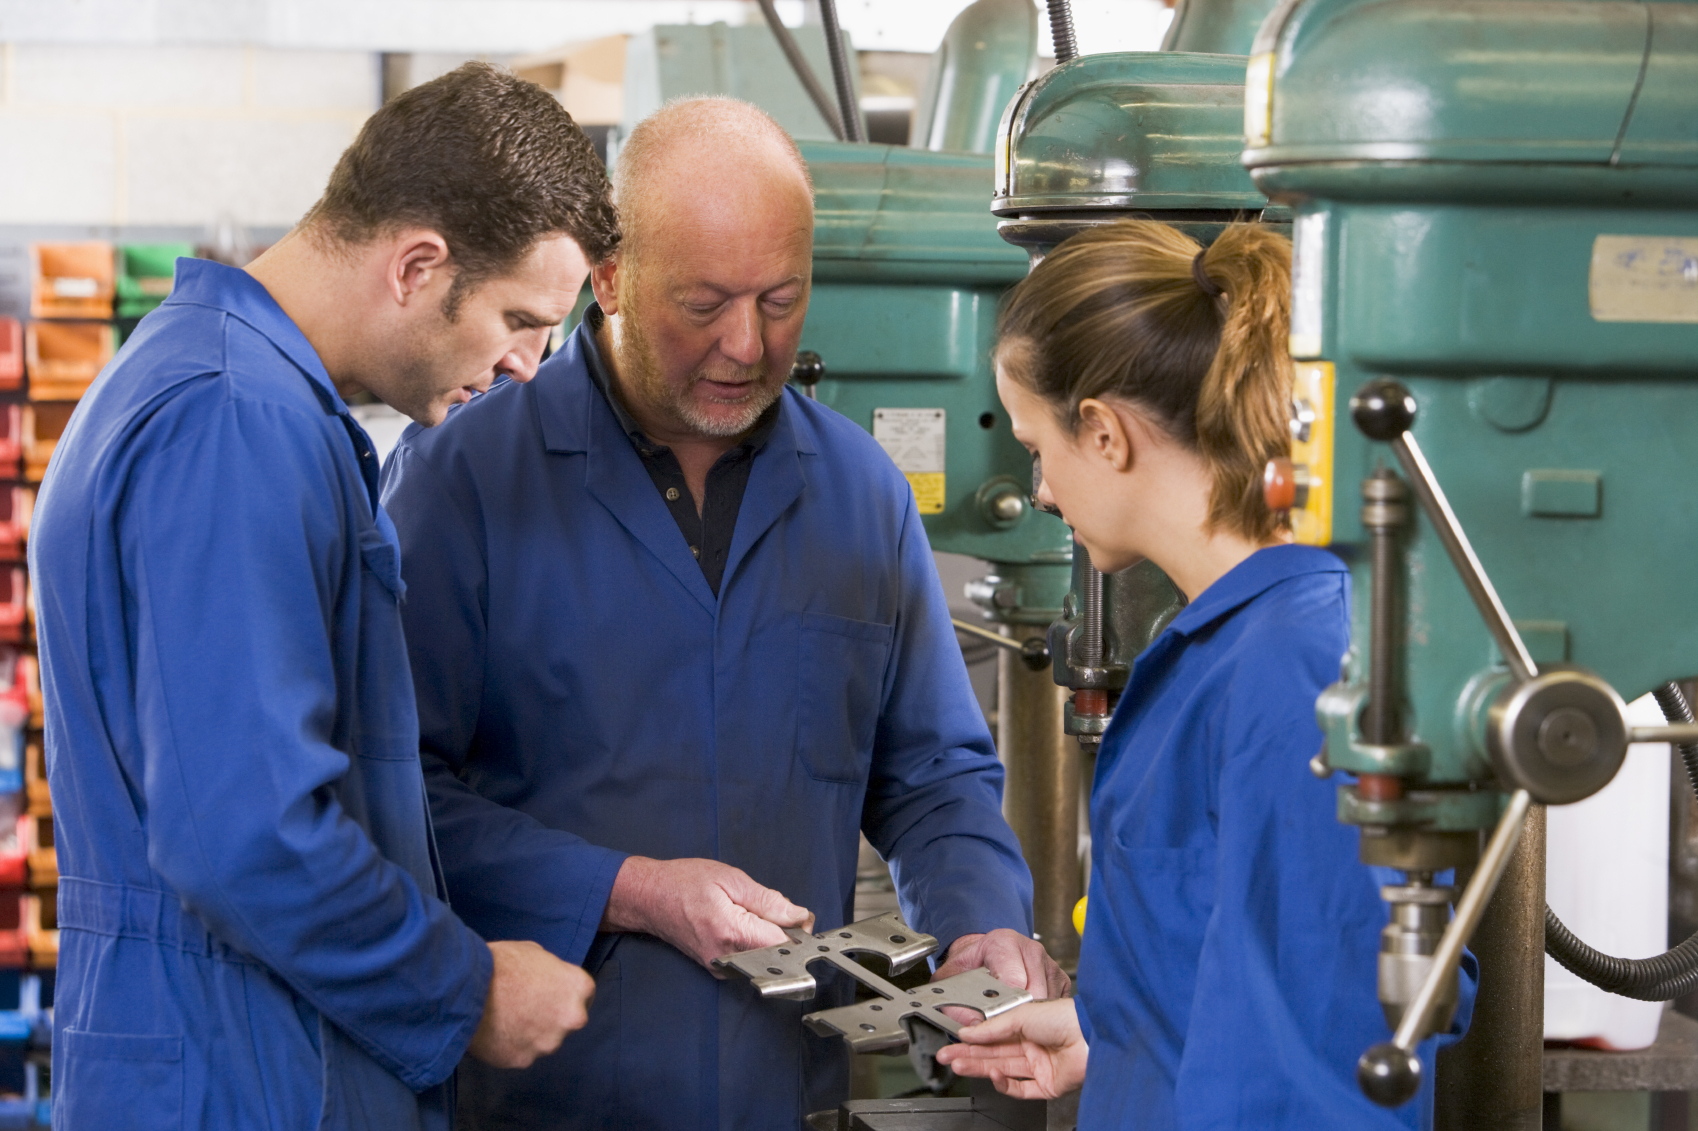 what is on job training